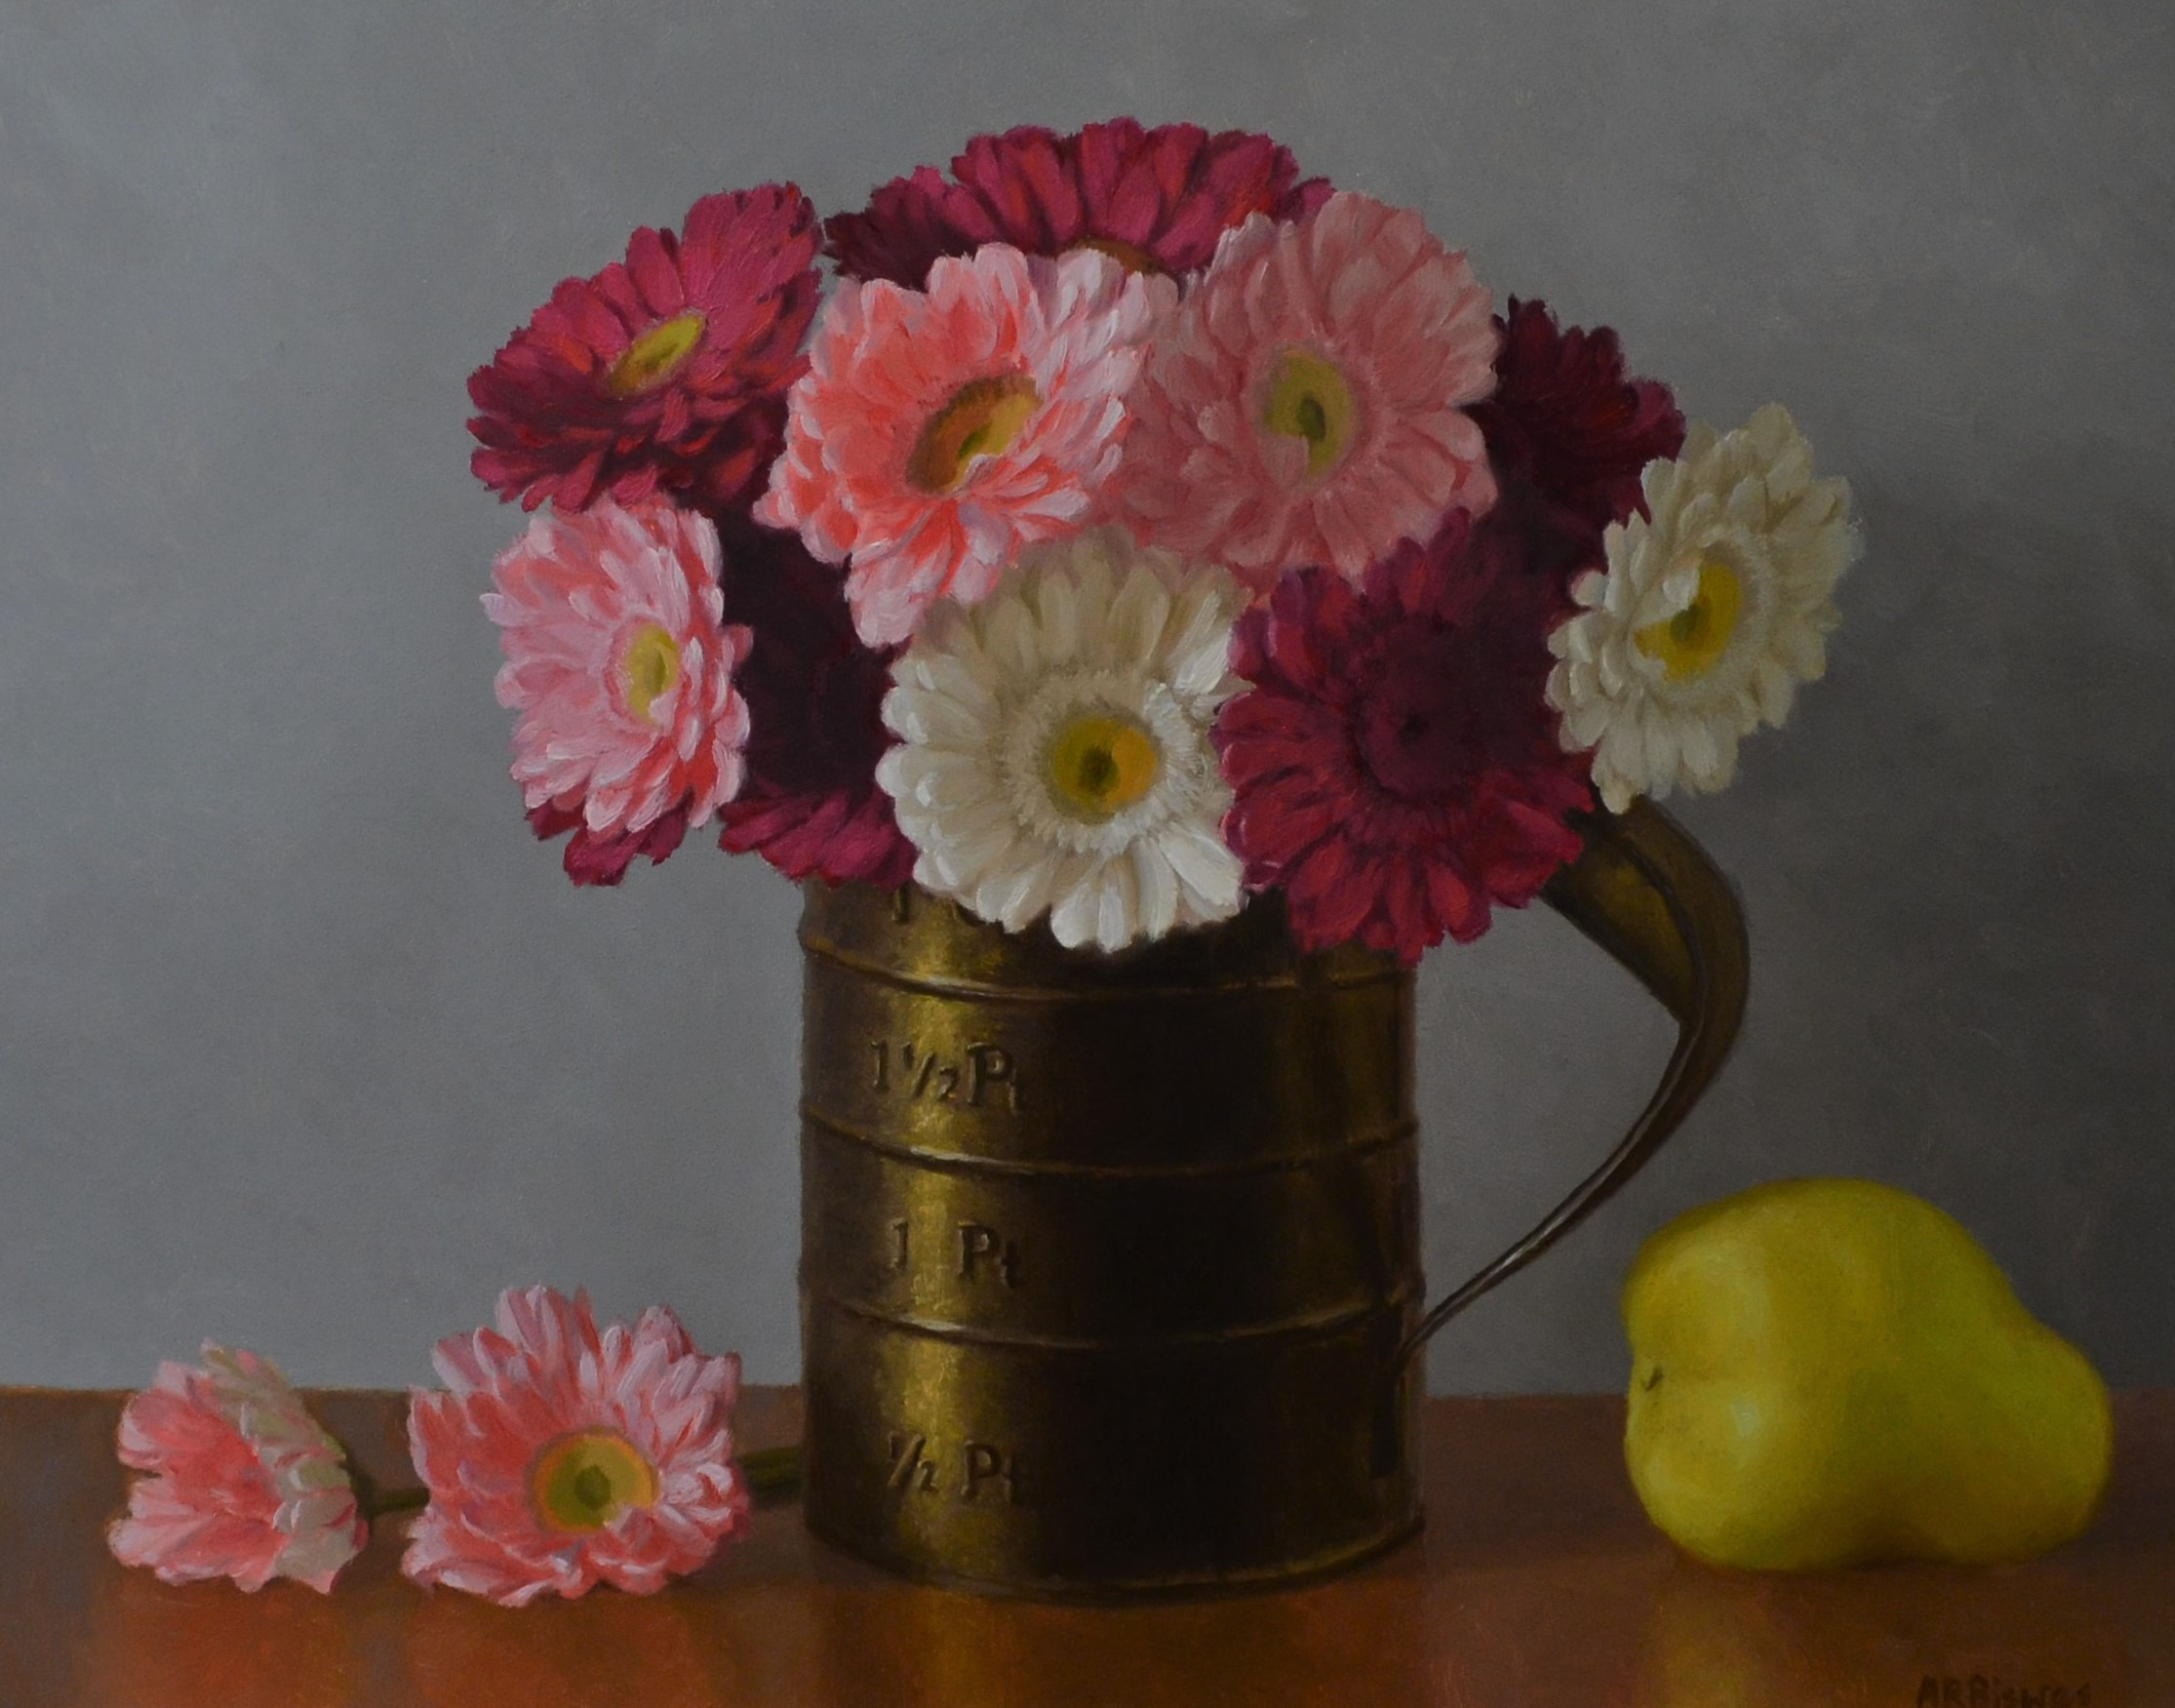 Gerberas and a pear